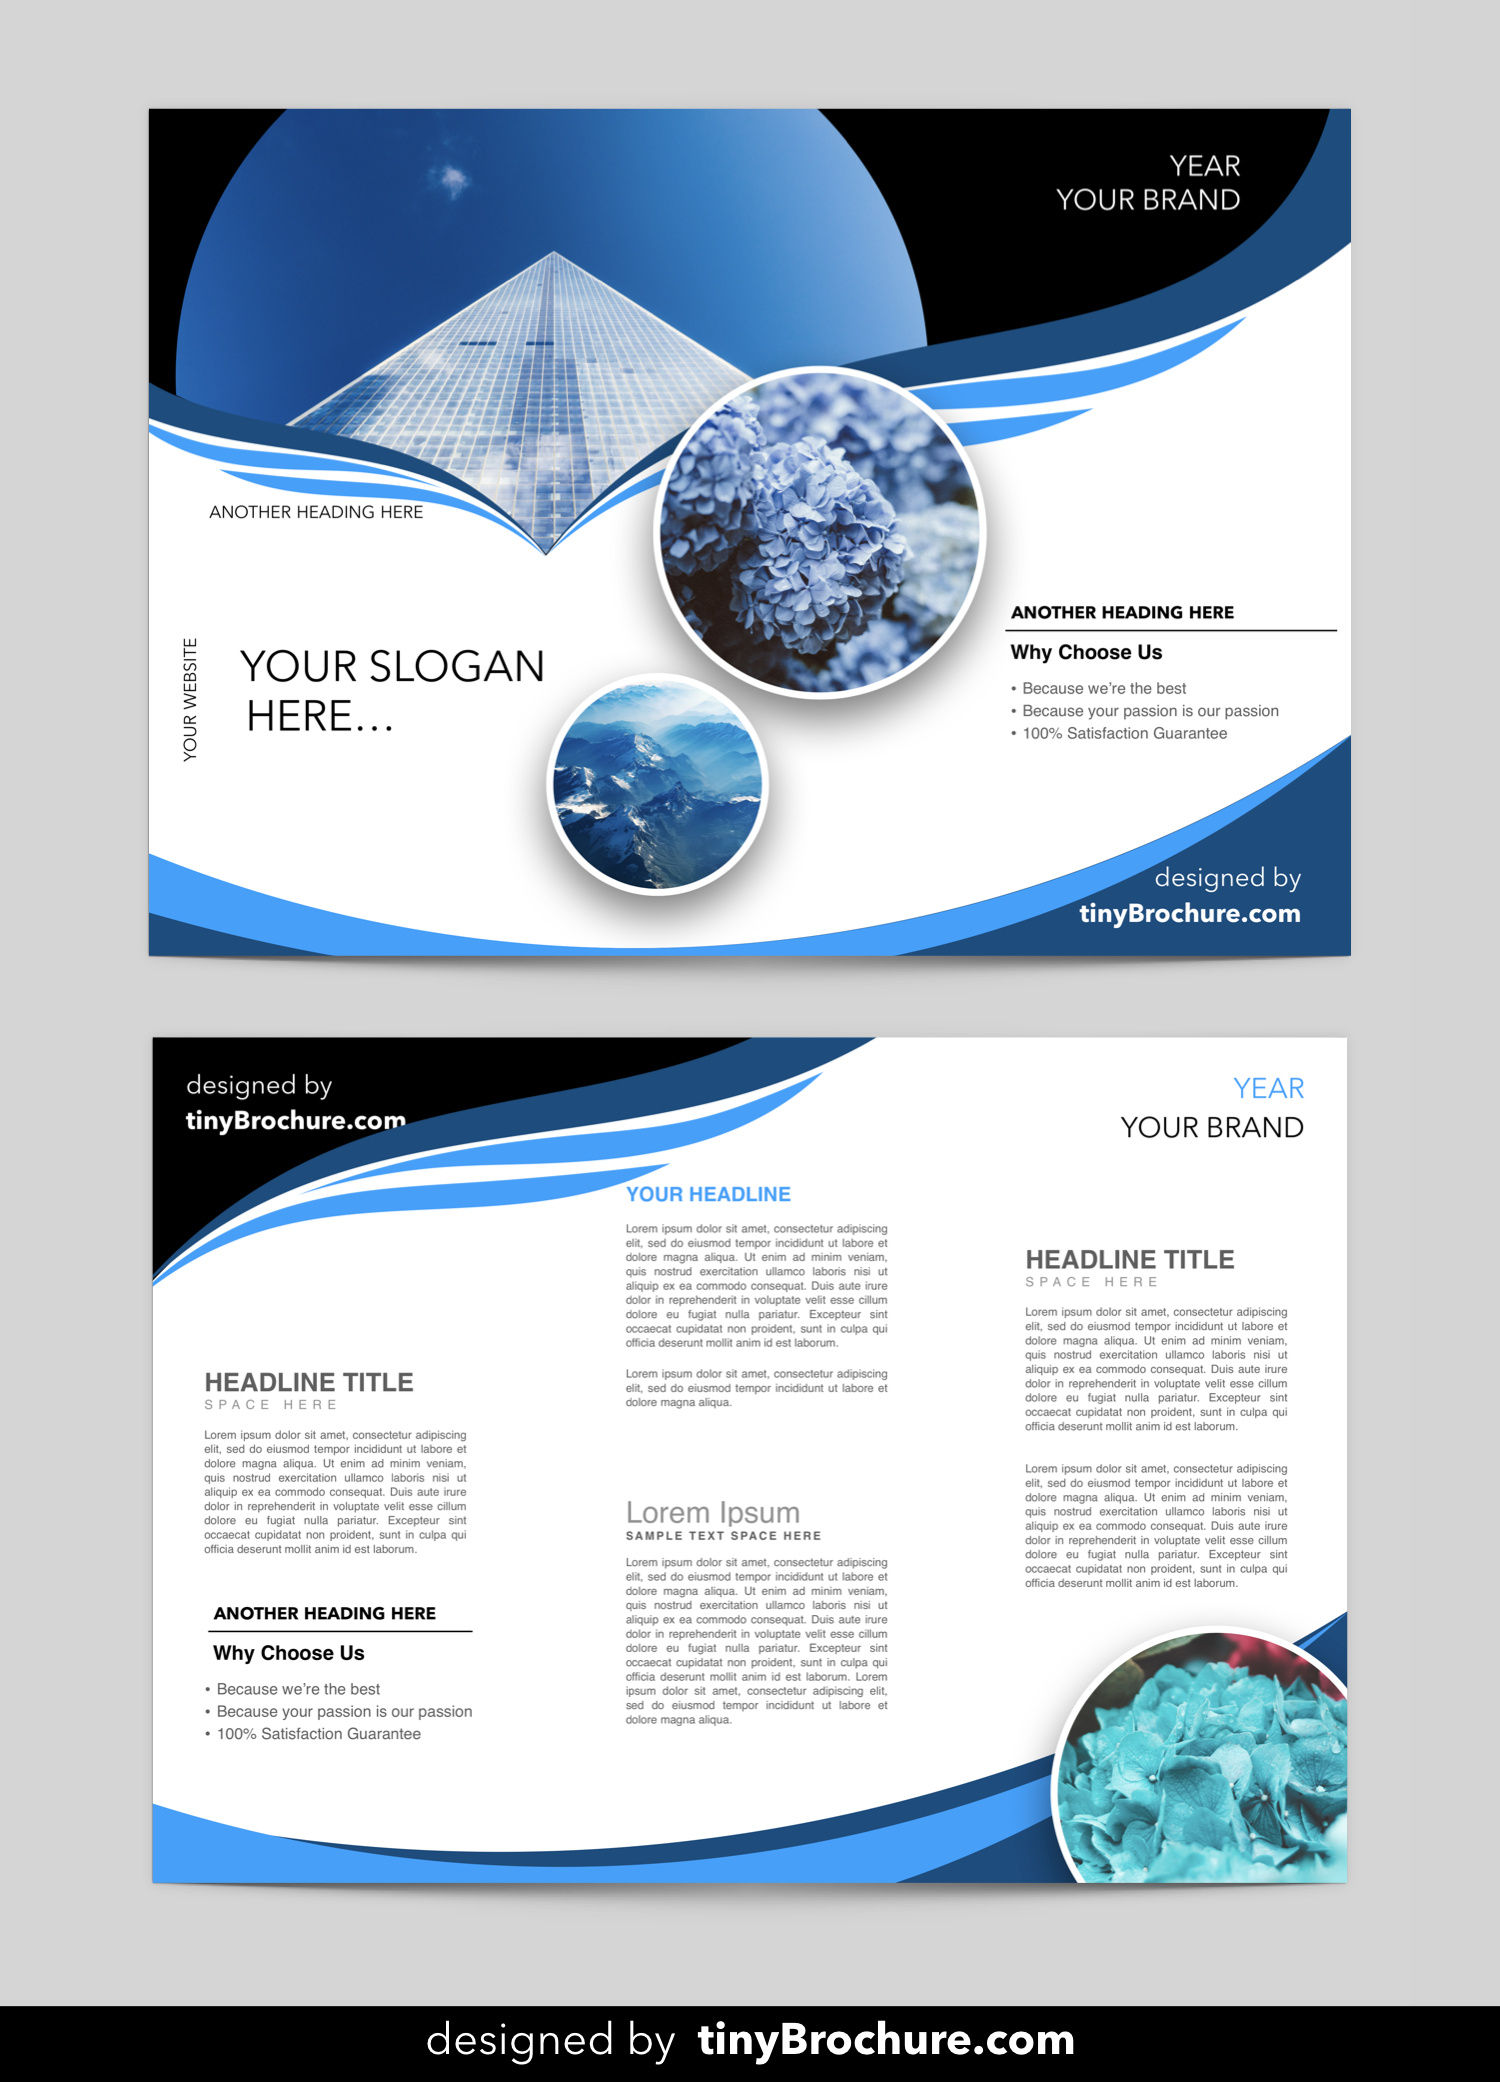 003 Microsoft Brochure Template Free Ideas Wondrous Throughout Free Brochure Templates For Word 2010